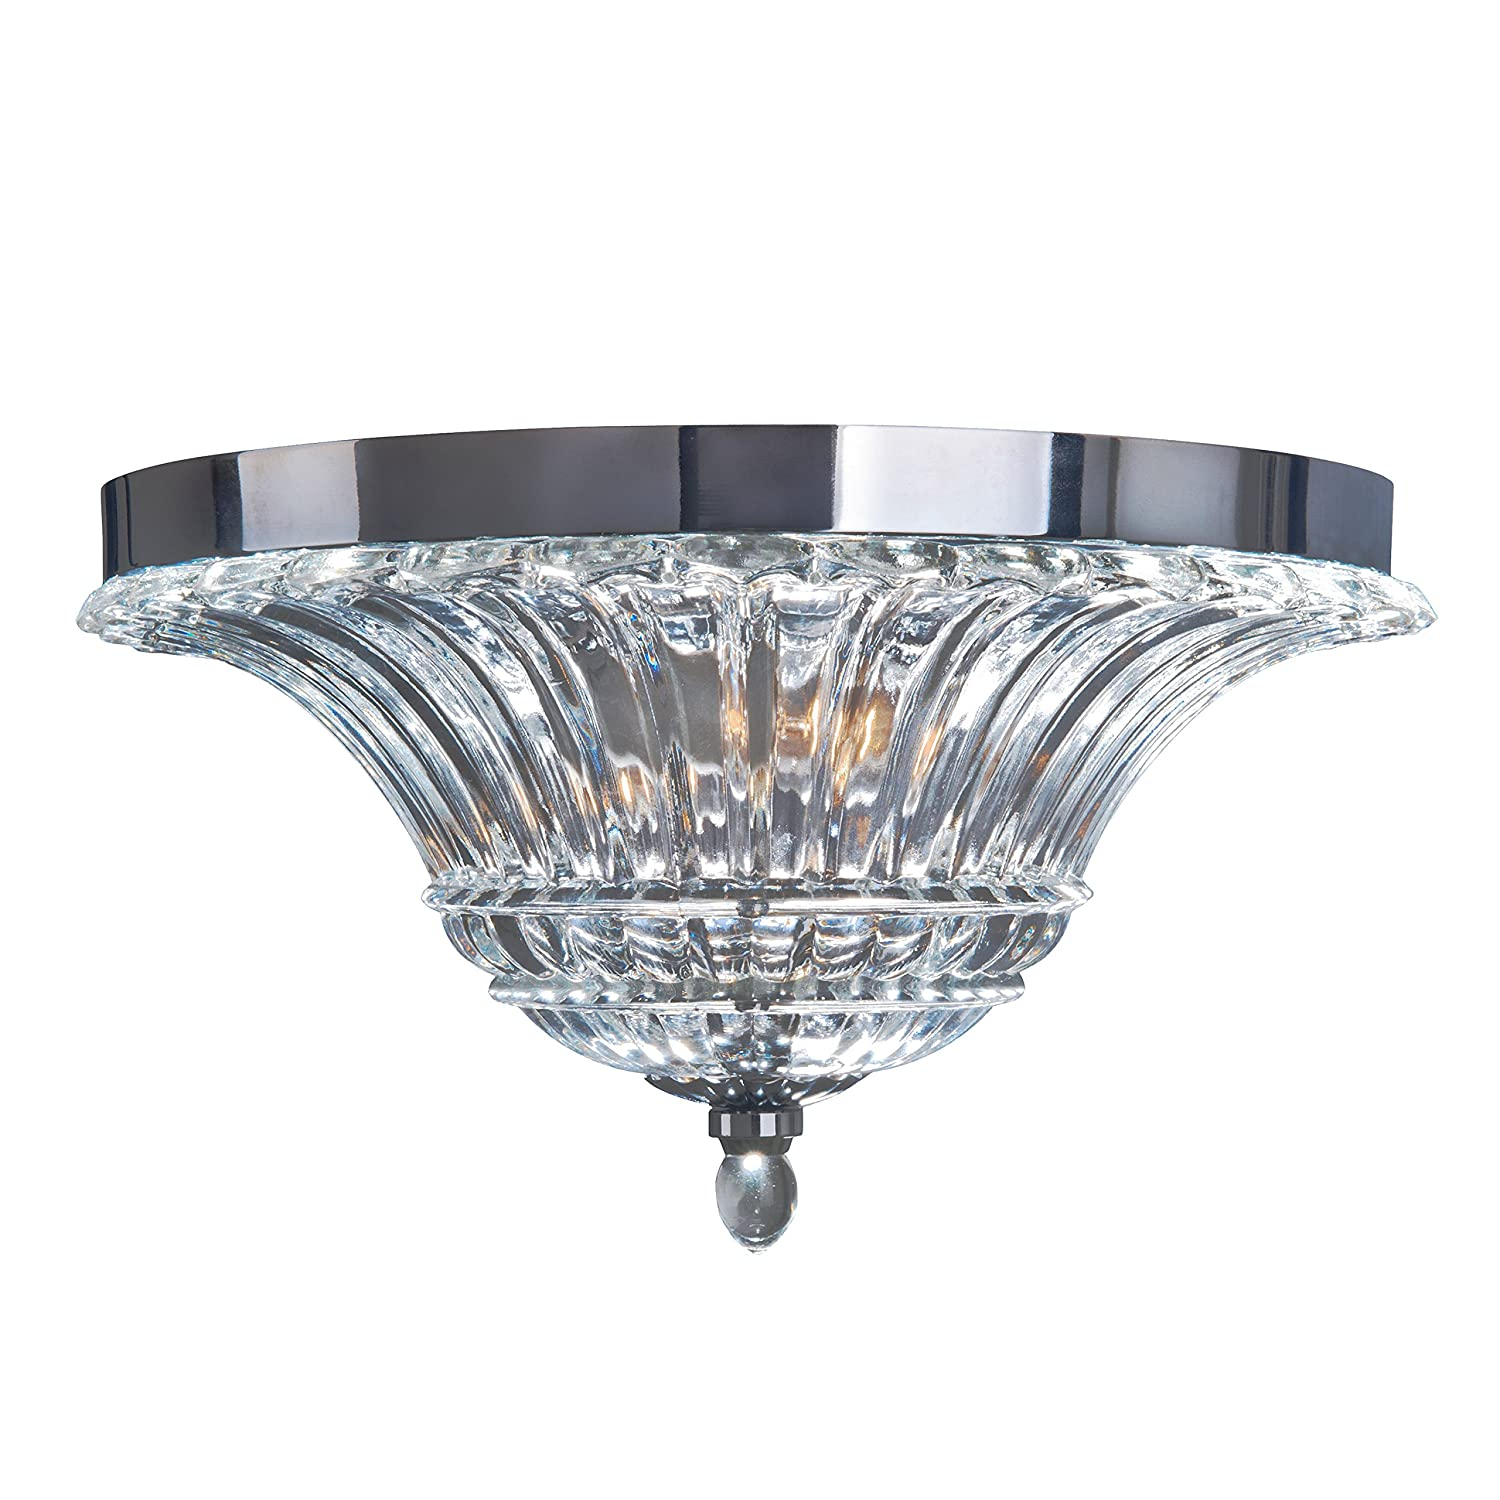 Elegant Designs FM1002 CHR 2 Light Glass Ceiling Glacier Petal Flushmount Chrome